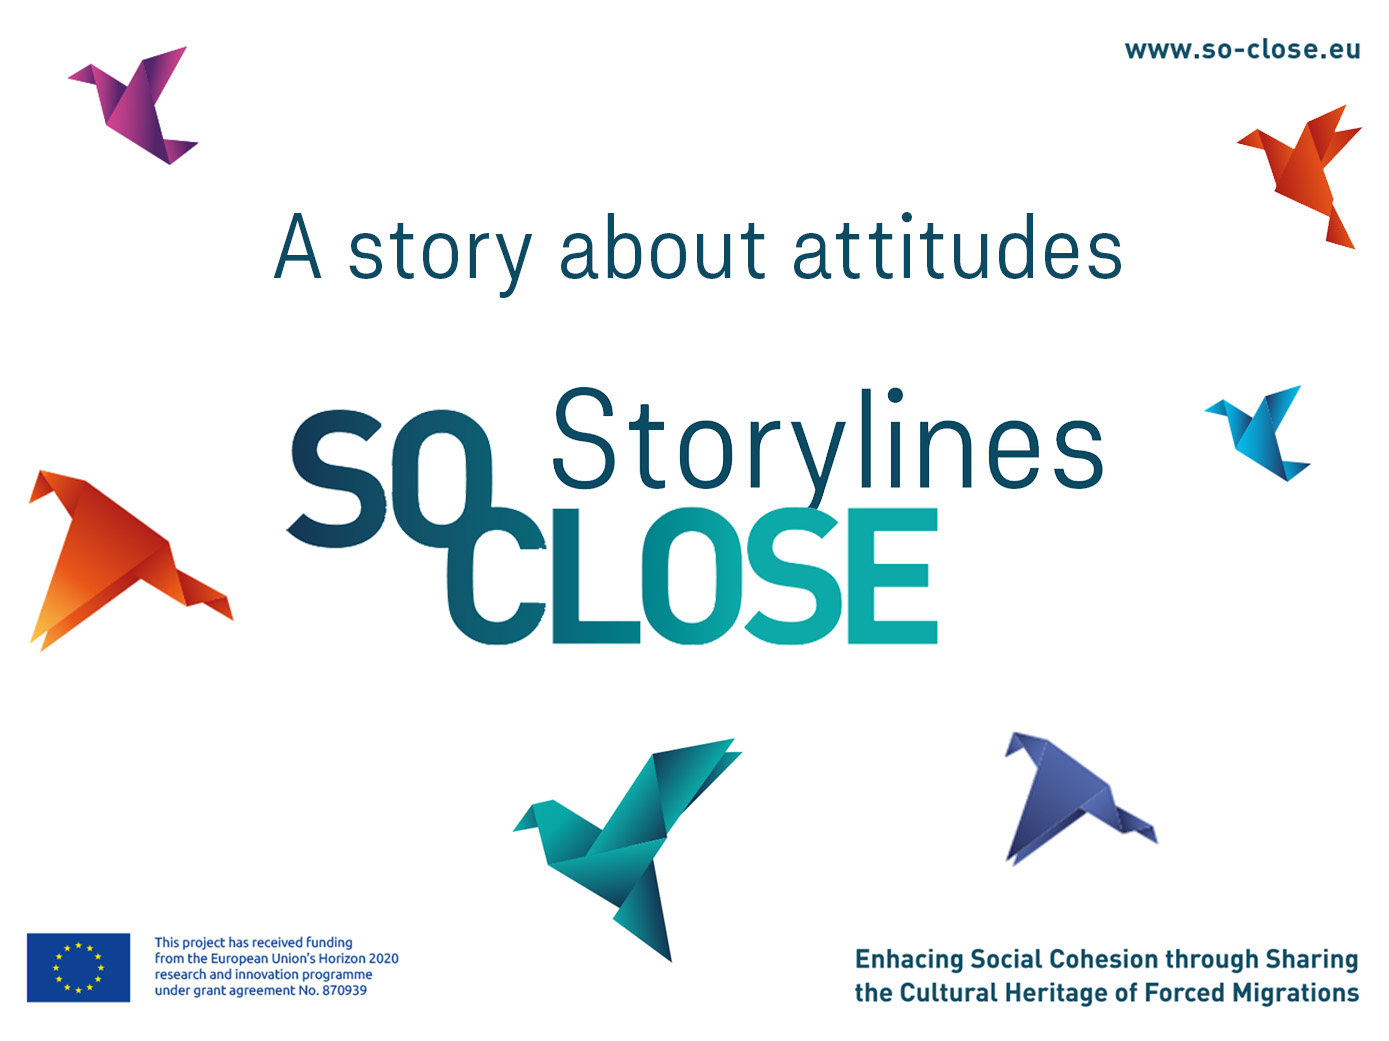 A story about attitudes